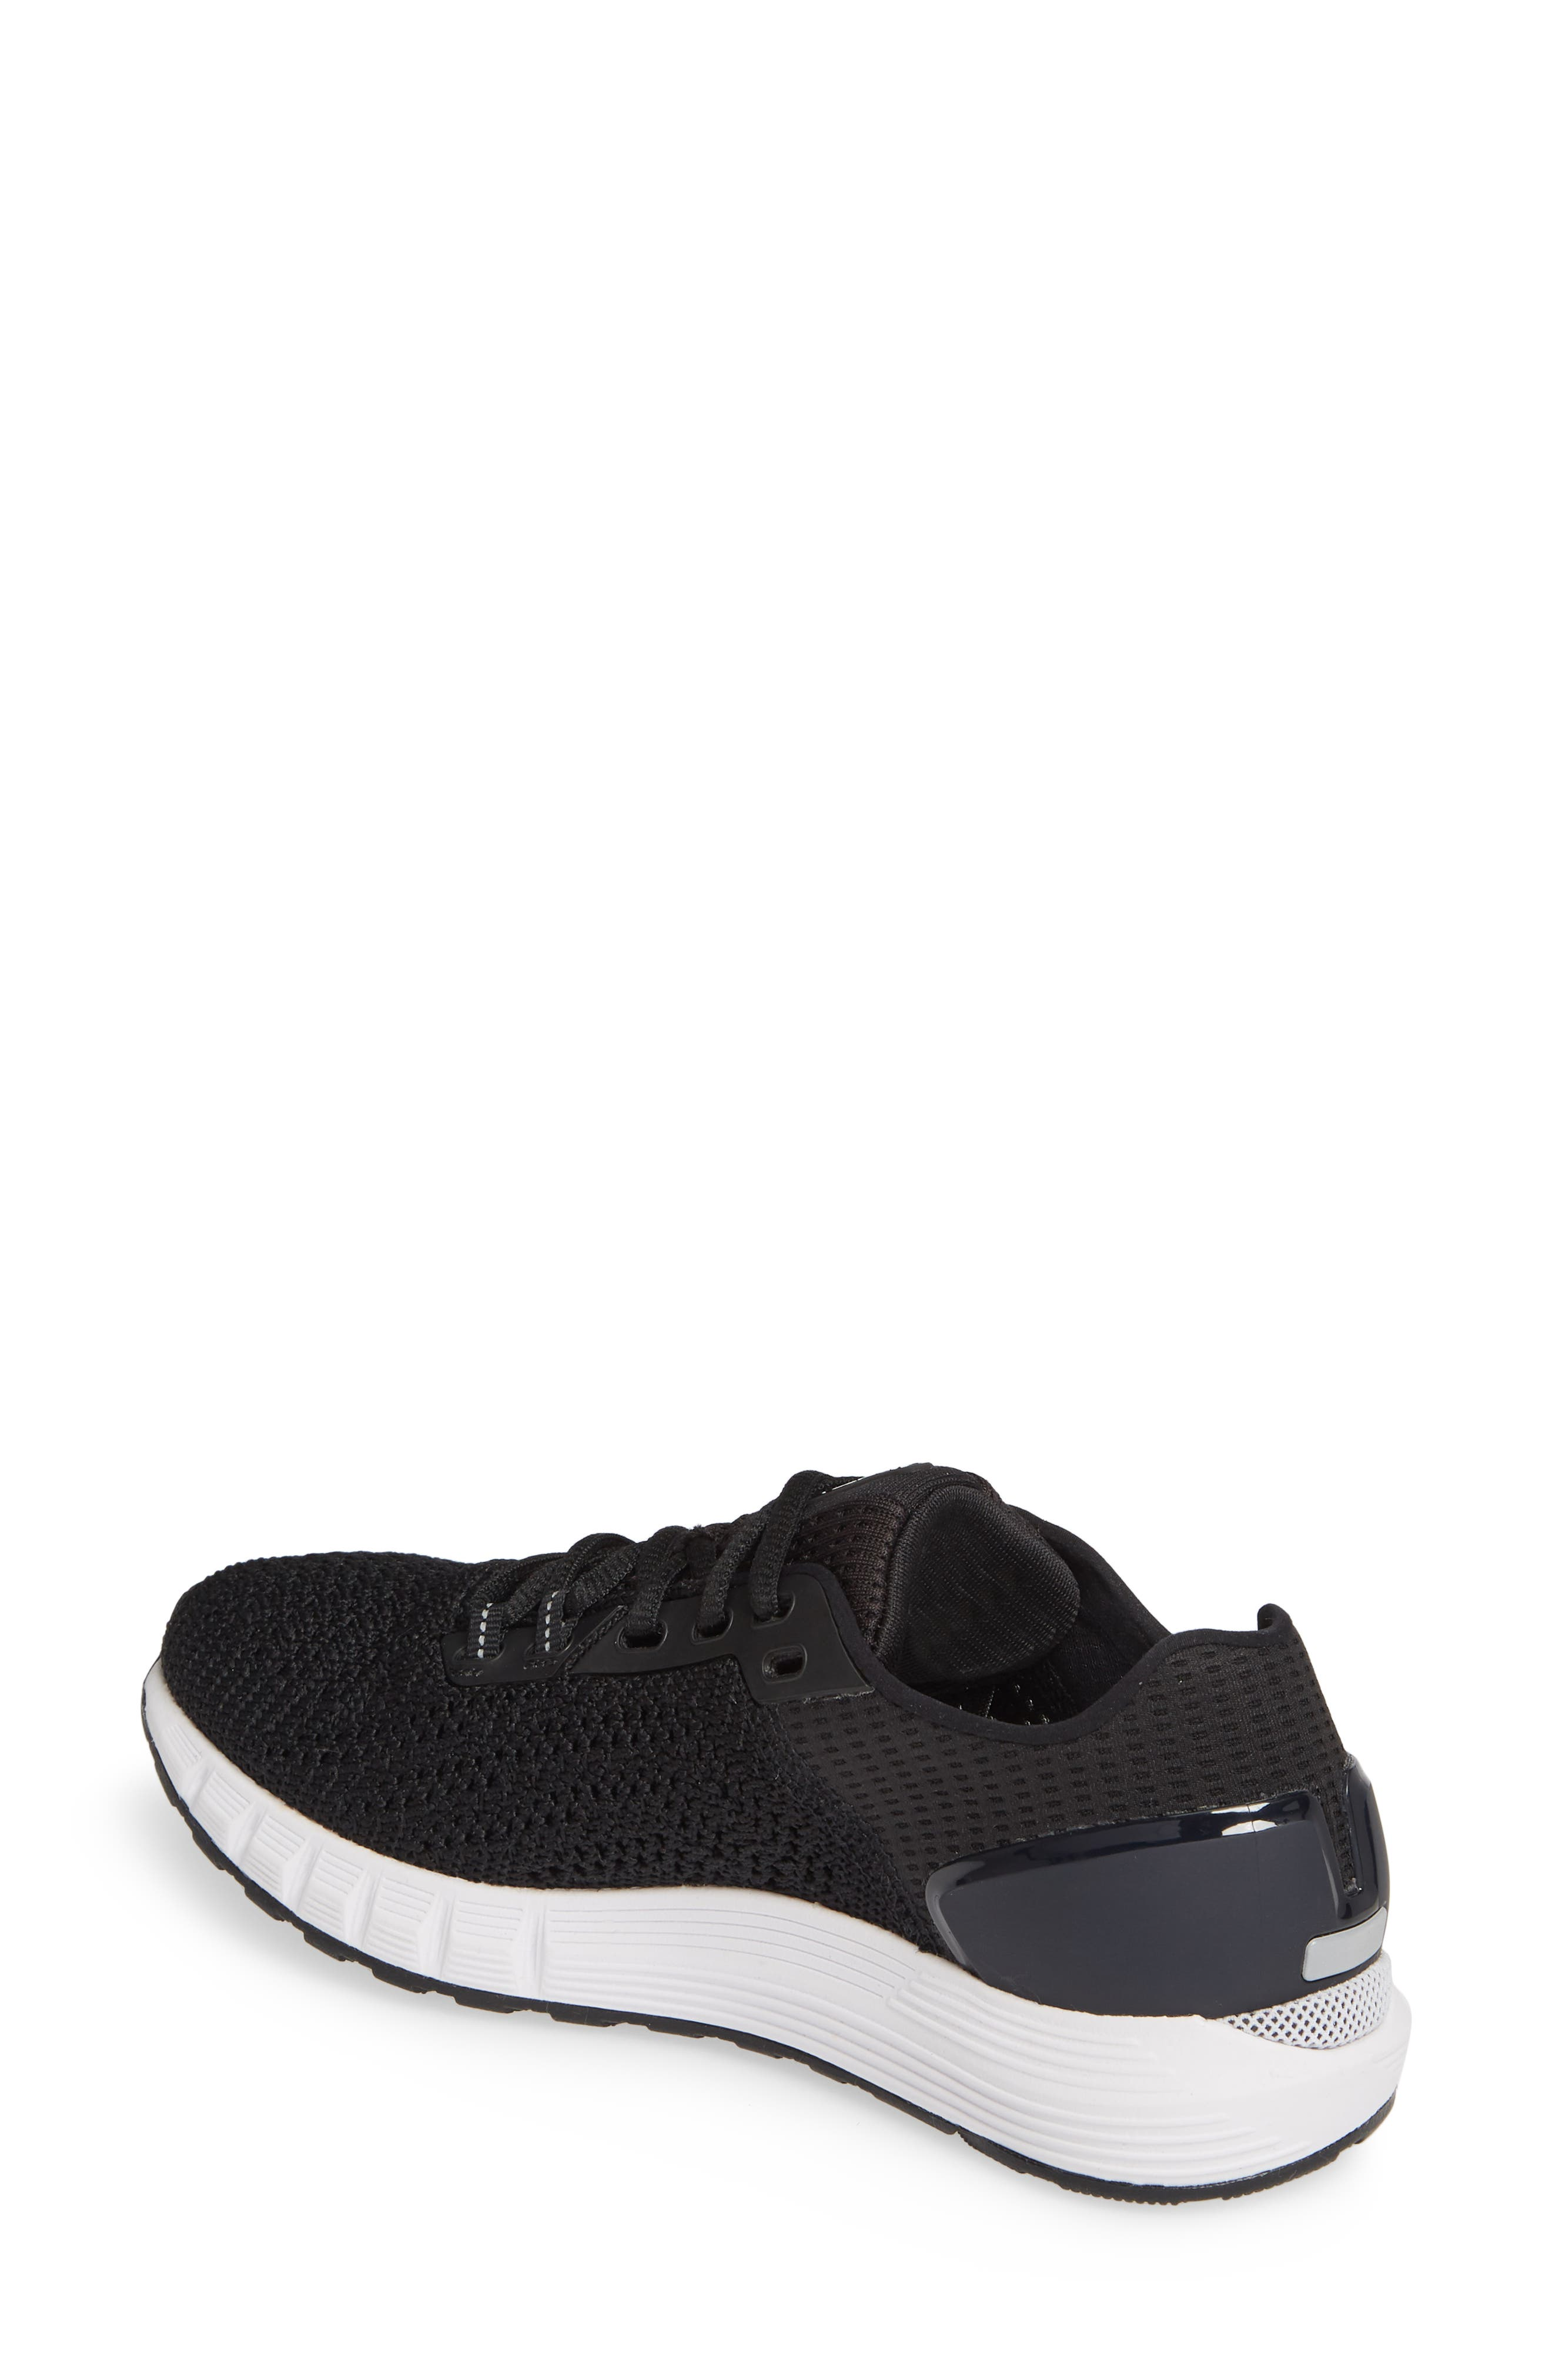 HOVR<sup>™</sup> Sonic 2 Connected Running Shoe,                             Alternate thumbnail 2, color,                             BLACK/ WHITE/ WHITE